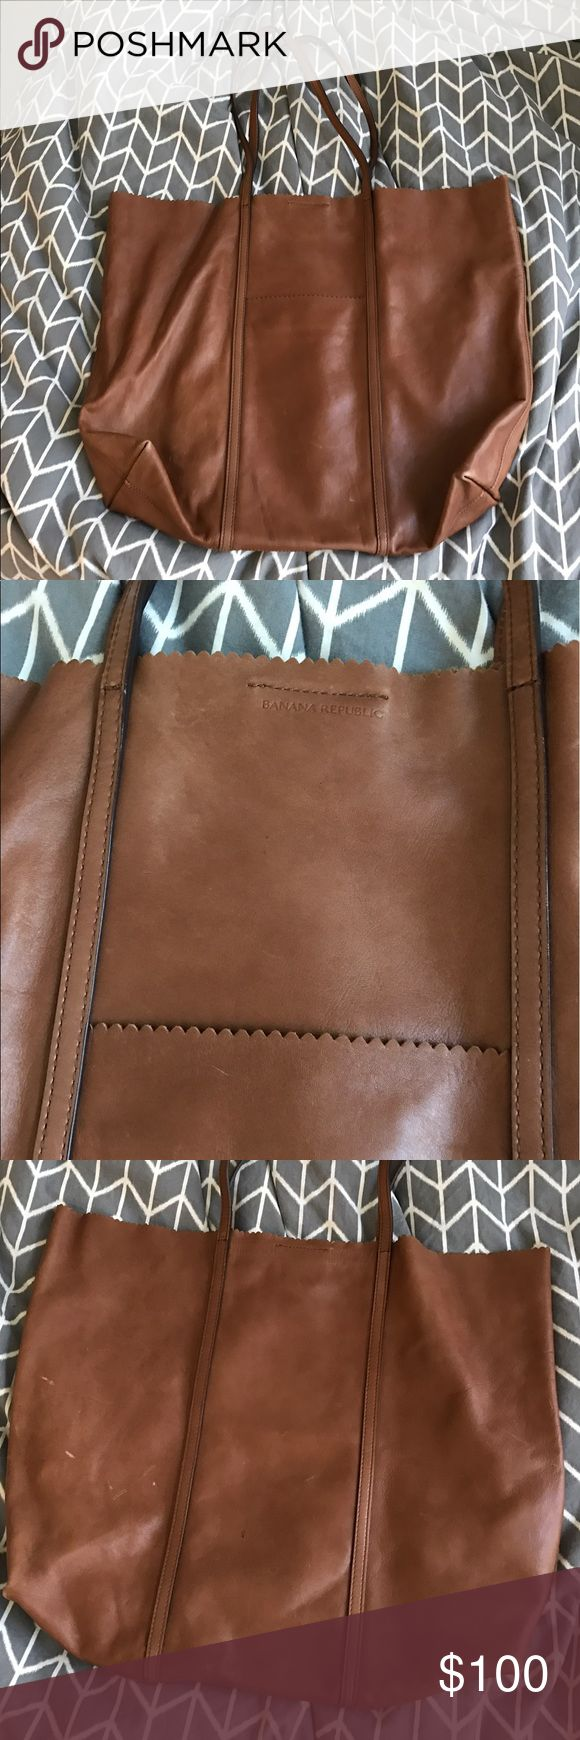 Banana republic brown leather tote Banana republic light brown leather tote. Real soft leather. Worn many times. Very loved. Some marks as seen in the pictures, but still in great condition Banana Republic Bags Totes